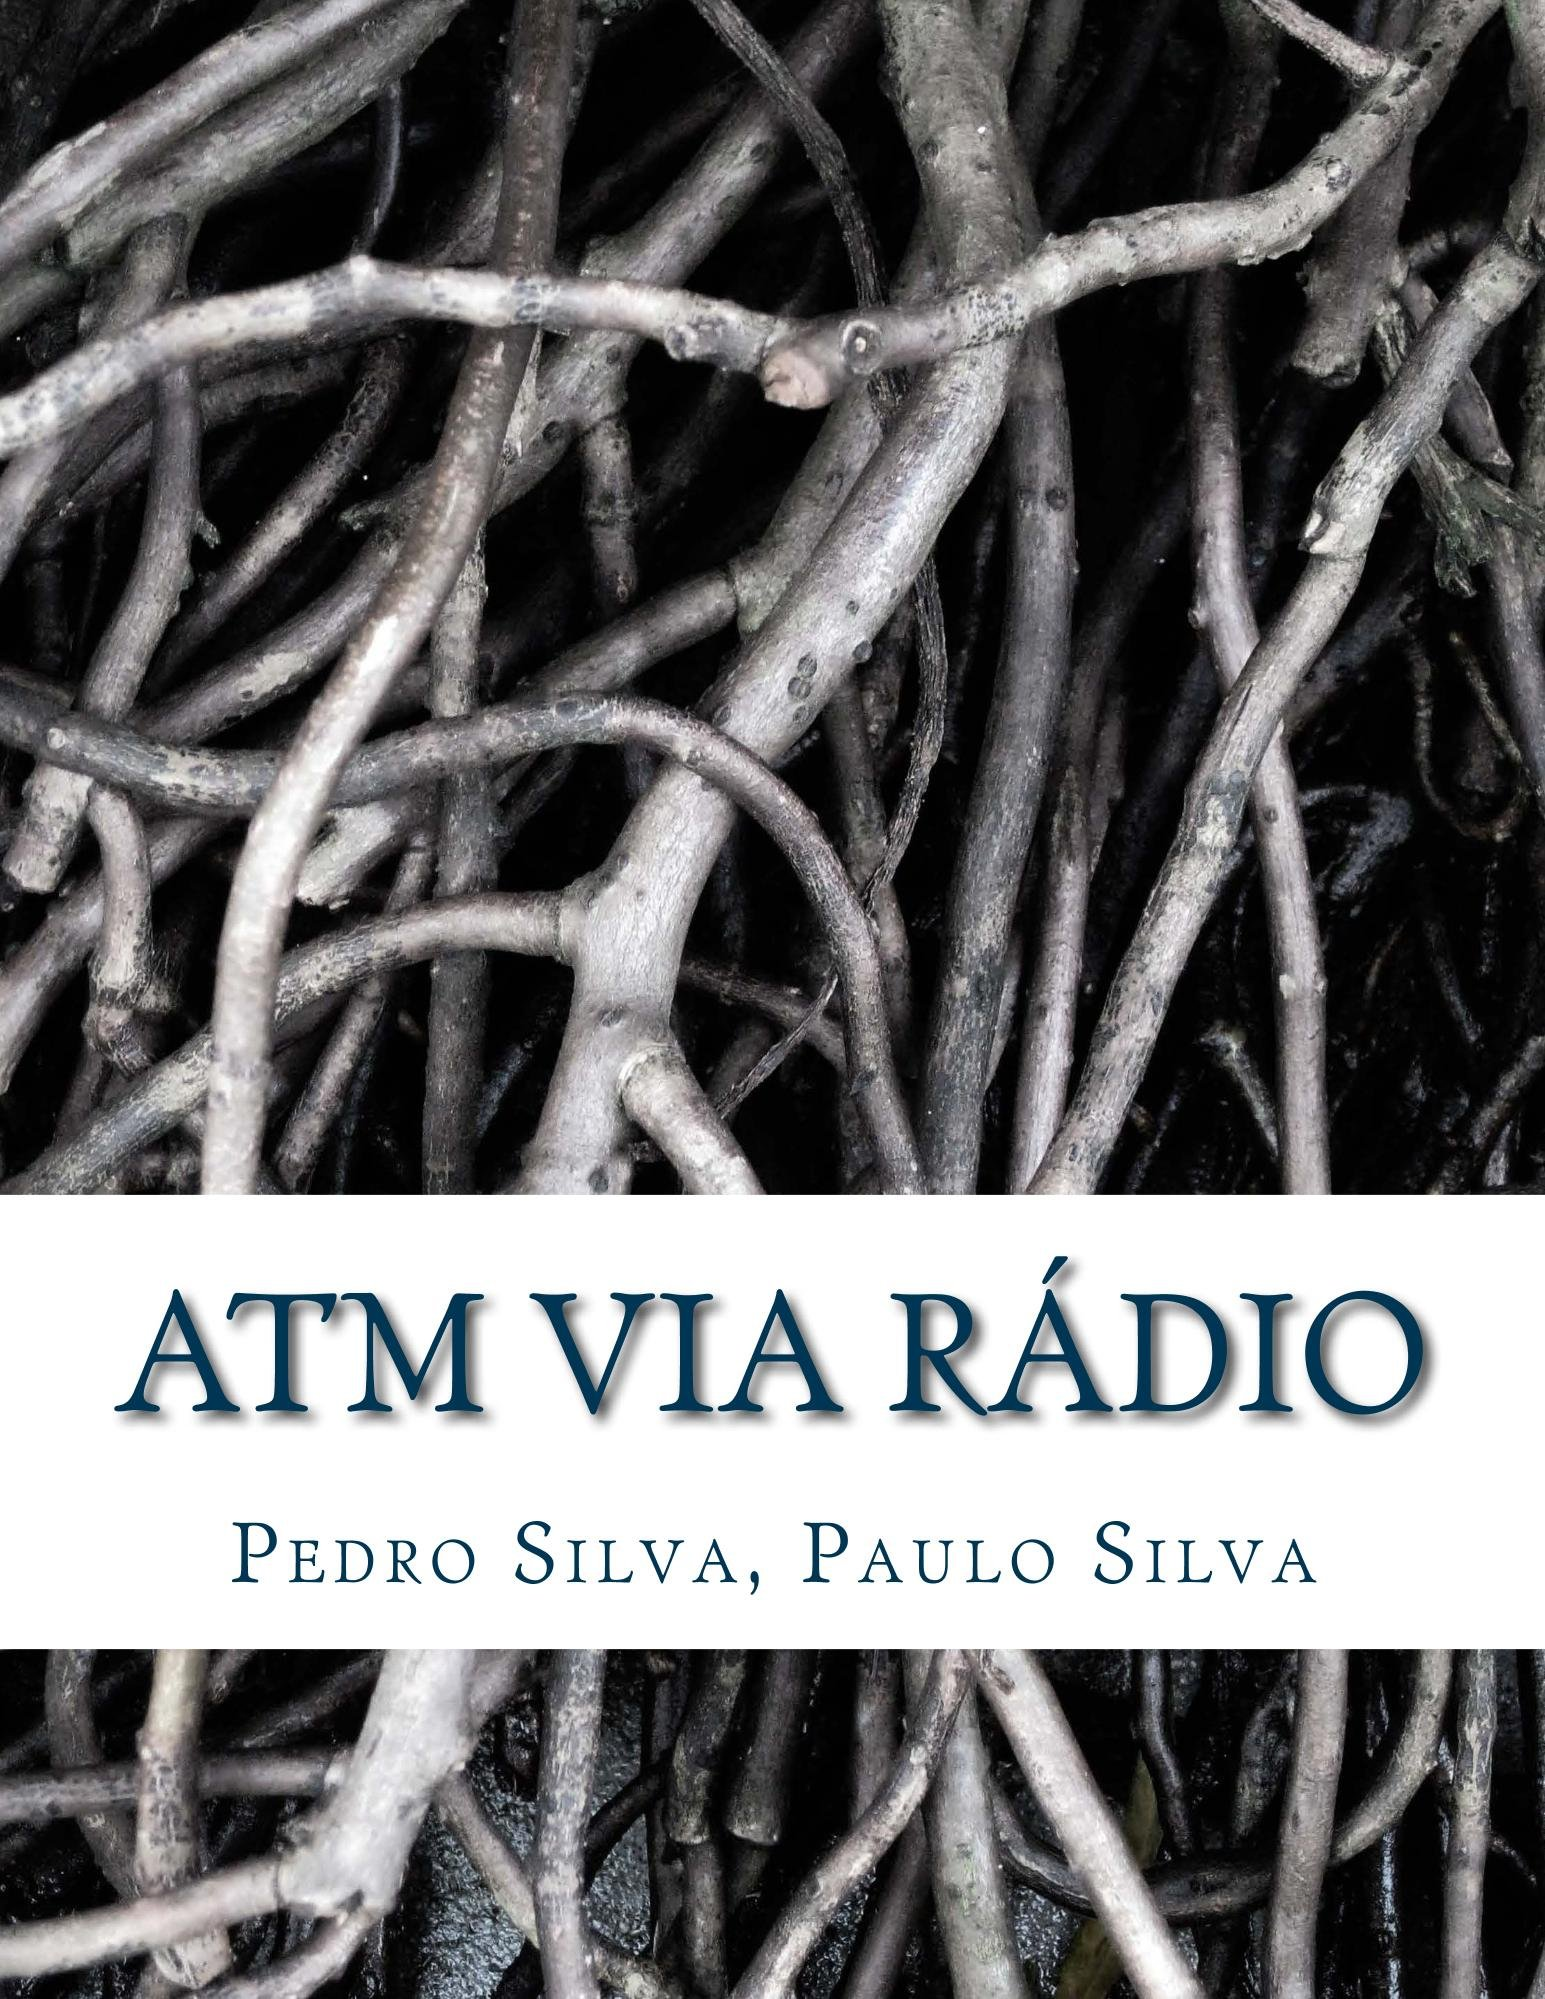 ATM via Rádio: Wireless Asynchronous Transfer Mode (ATM) Networking